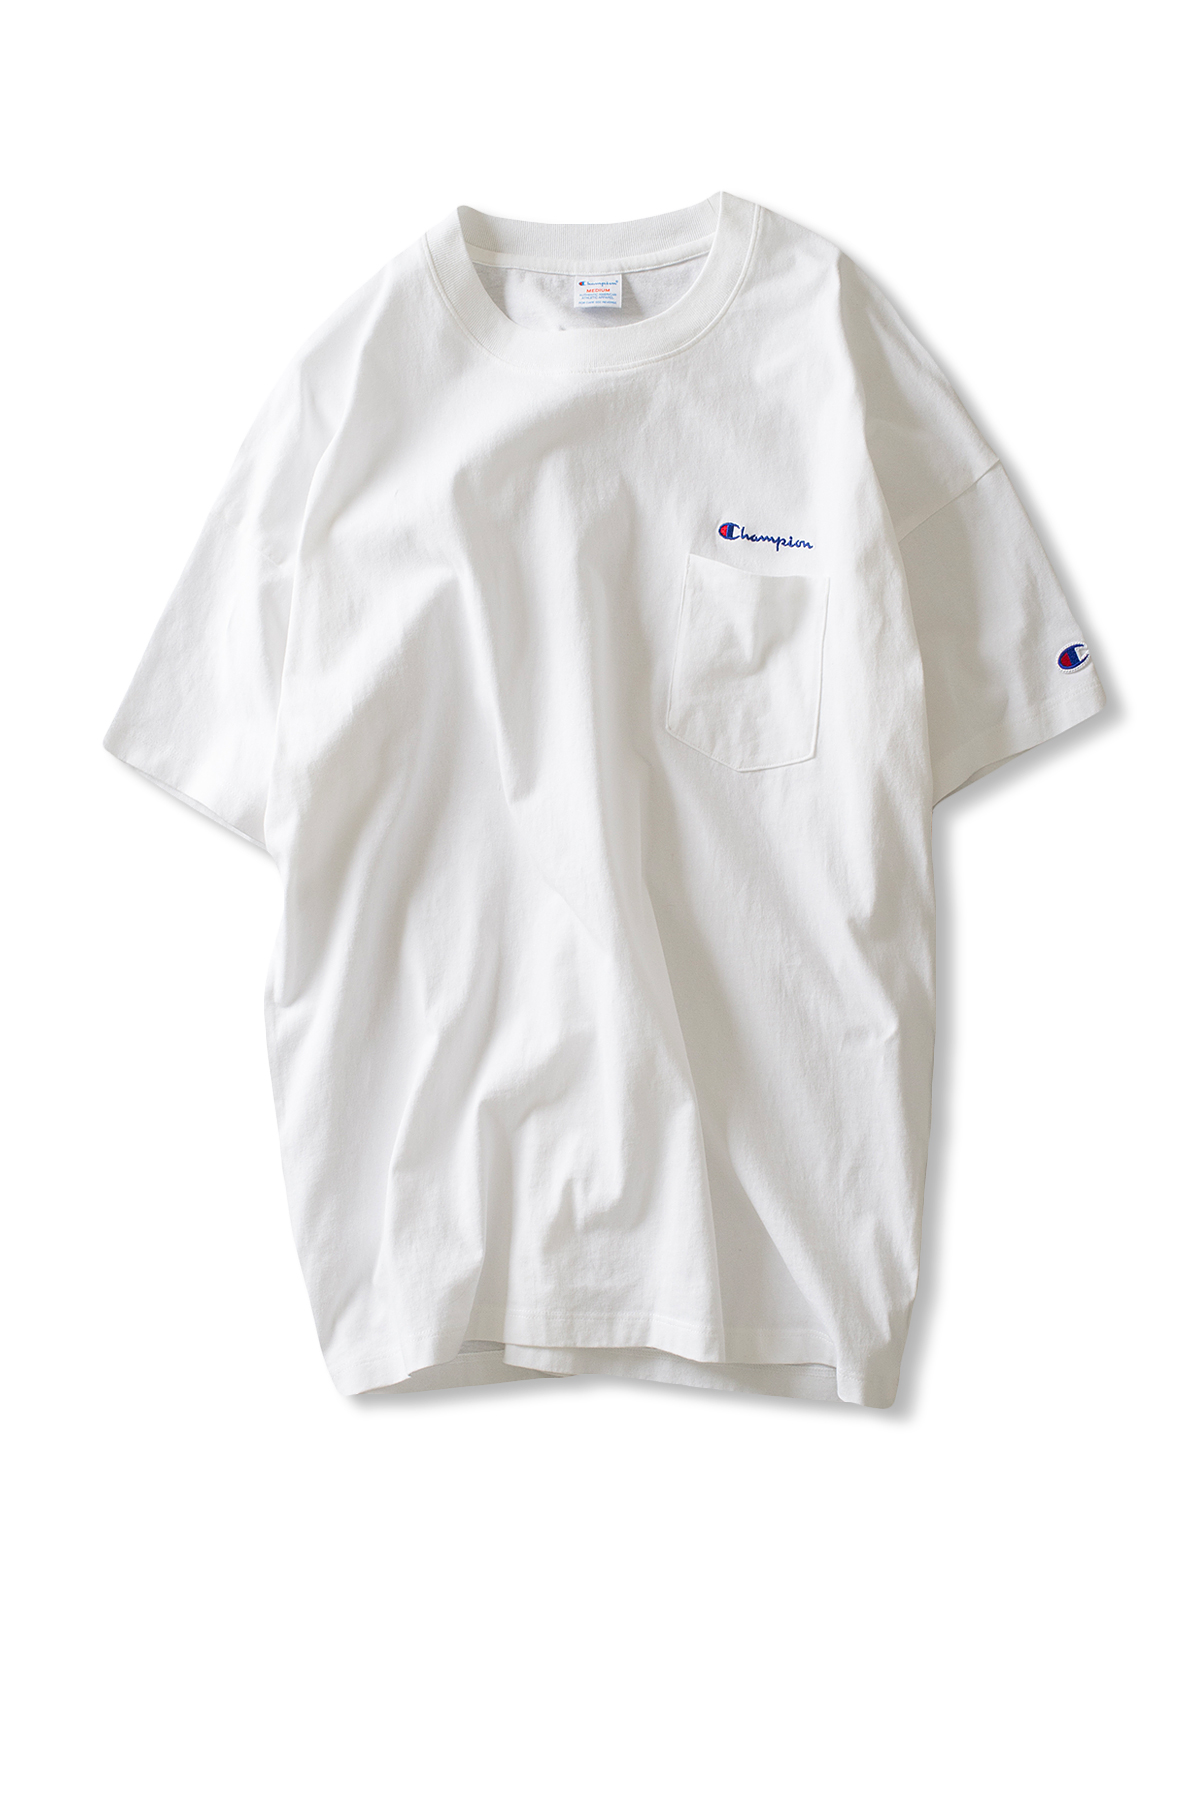 Champion : Campus Pocket T-shirt (White)